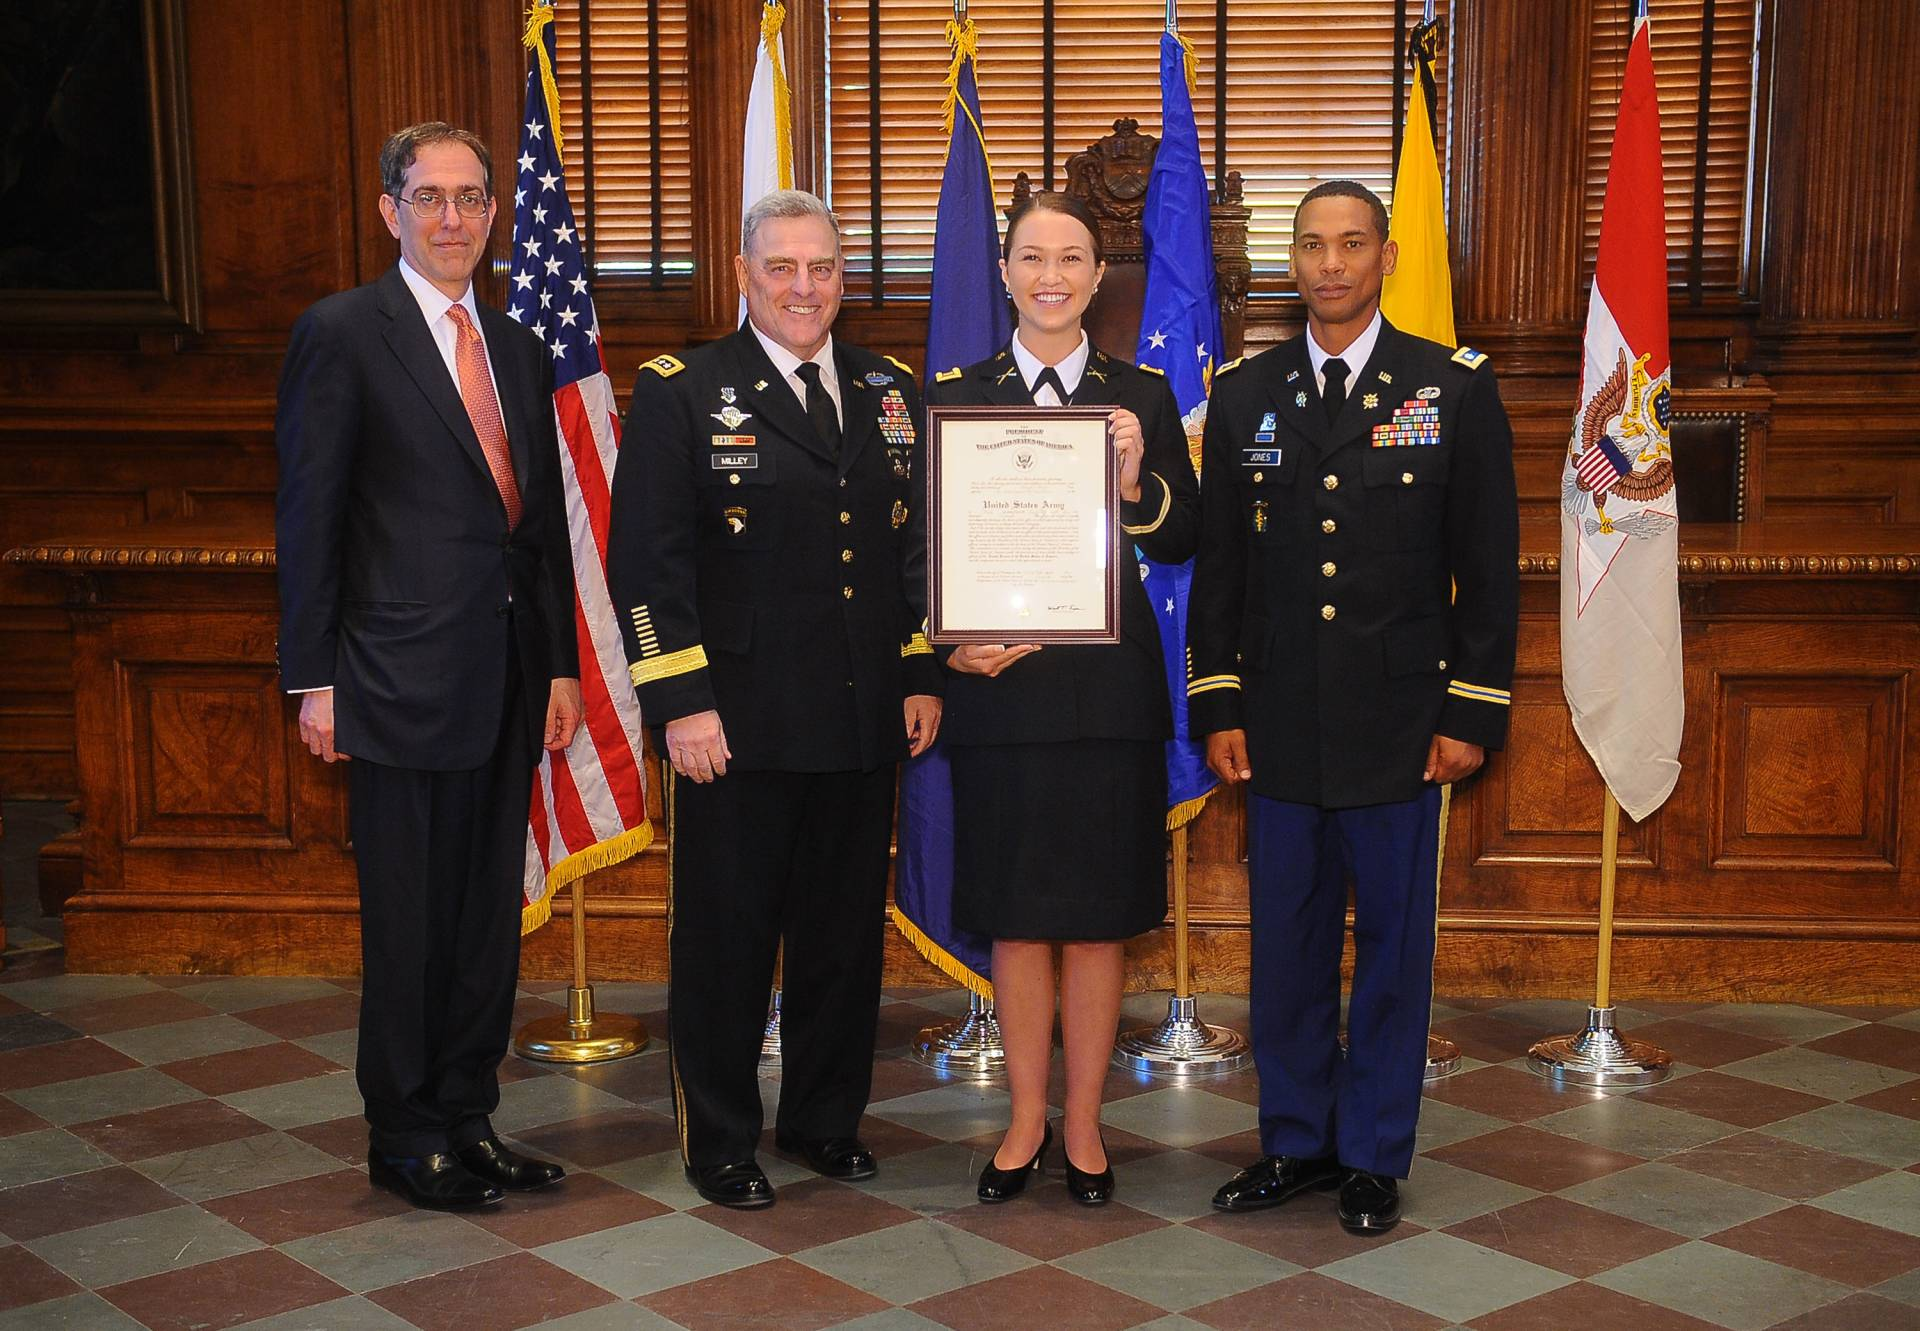 Princeton University President Christopher L. Eisgruber, Gen. Milley and Lt. Col. Courtney Jones, director of the Army Officer Education Program for Princeton's Army ROTC Tiger Battalion